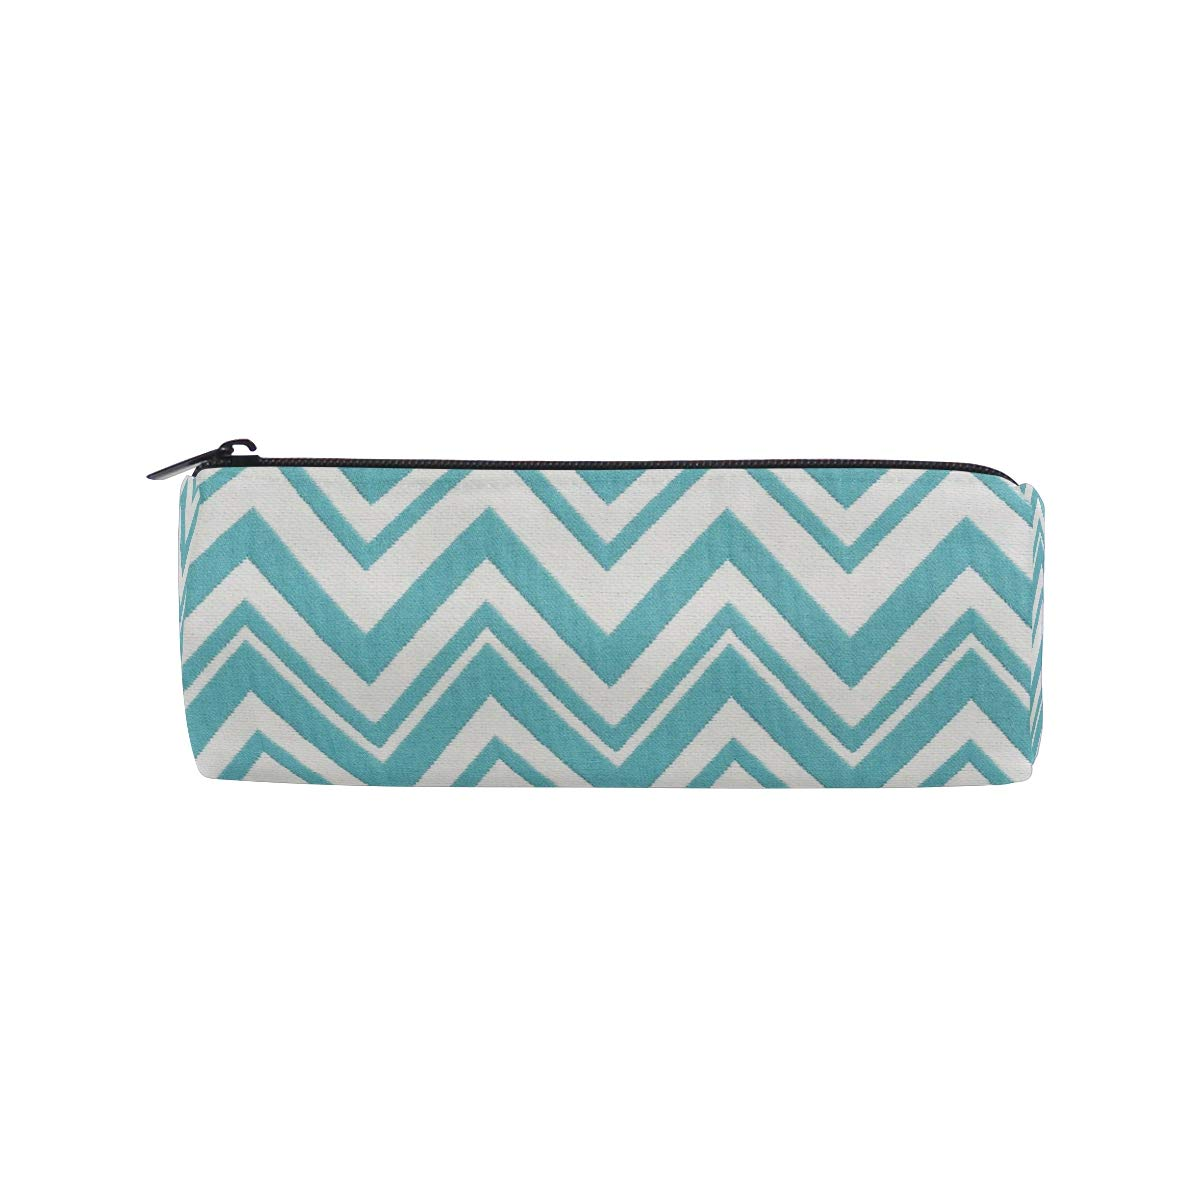 Pencil Case Teal and White Zig Zag School Pen Pouch Office Zippered Pencil Cases Holder Women Makeup Bag by KMAND (Image #1)